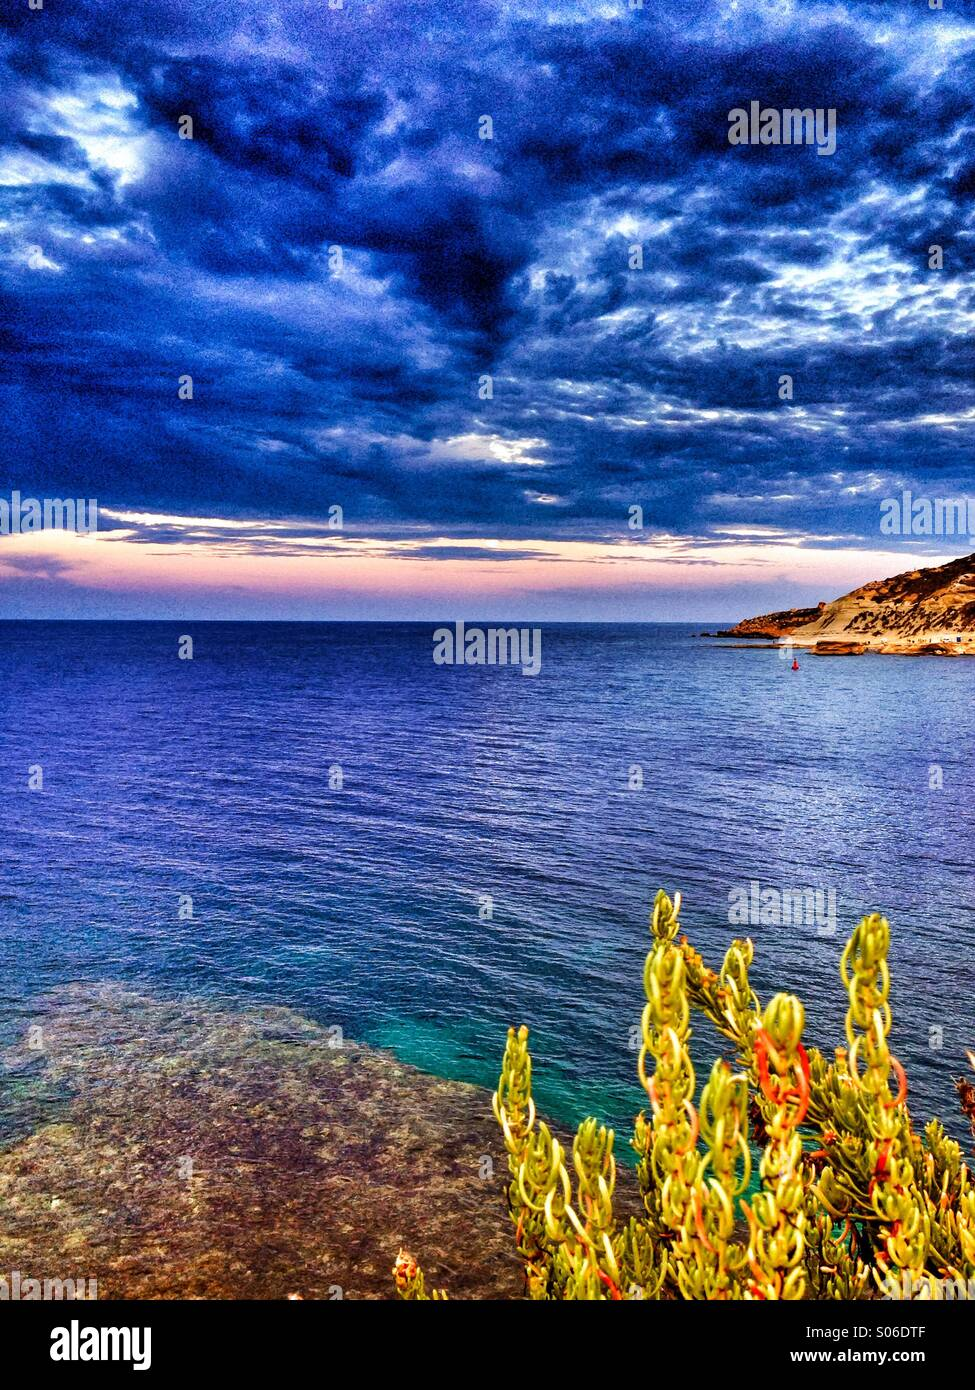 Summer storm clouds gathering over a harbour - Stock Image